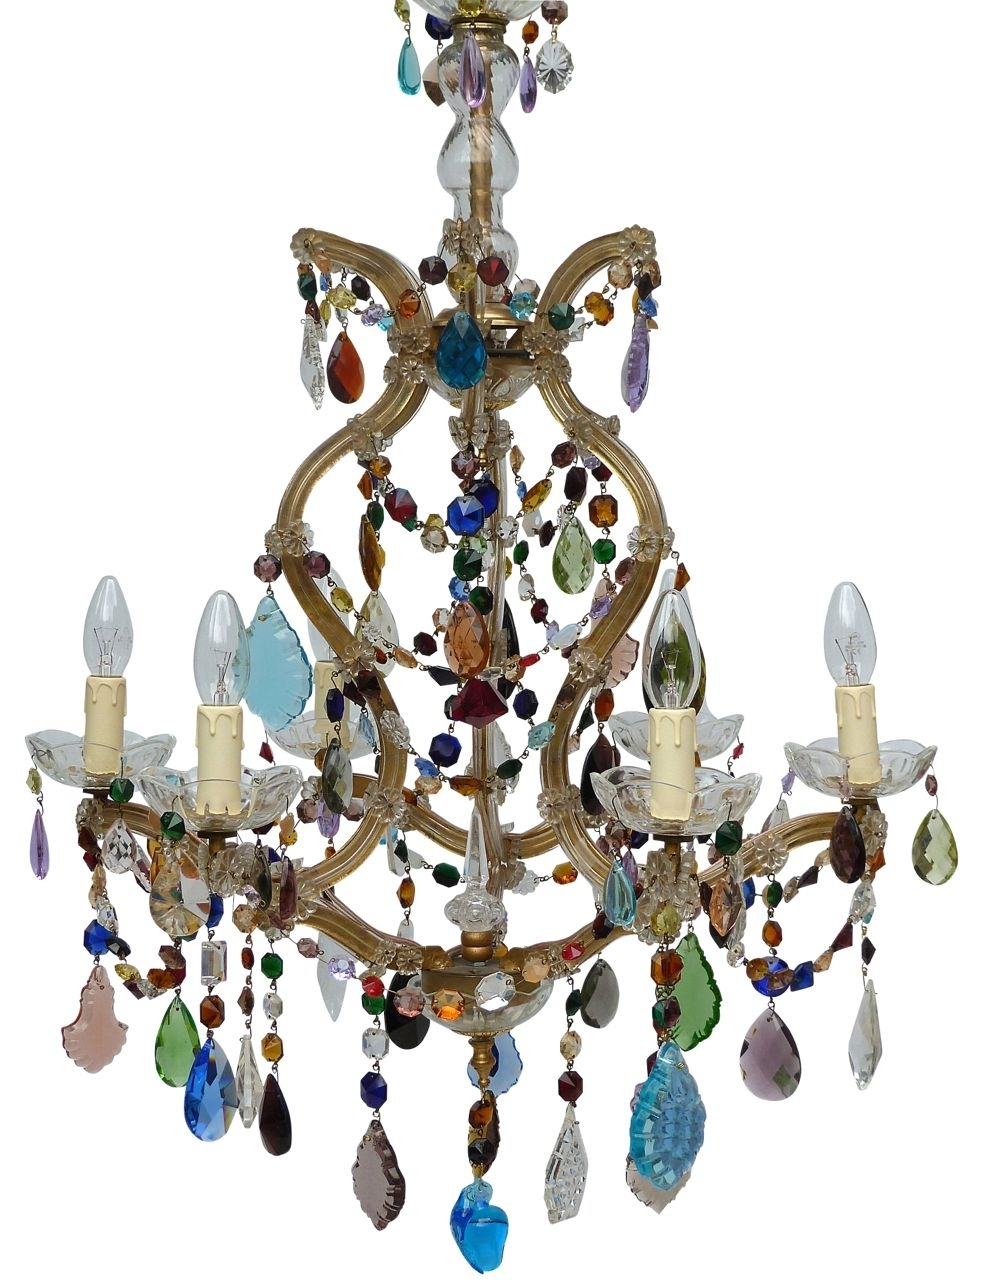 Coloured Chandeliers In 2018 The Vintage Chandelier Companymulti Coloured Archives – Page 3 Of (View 4 of 20)